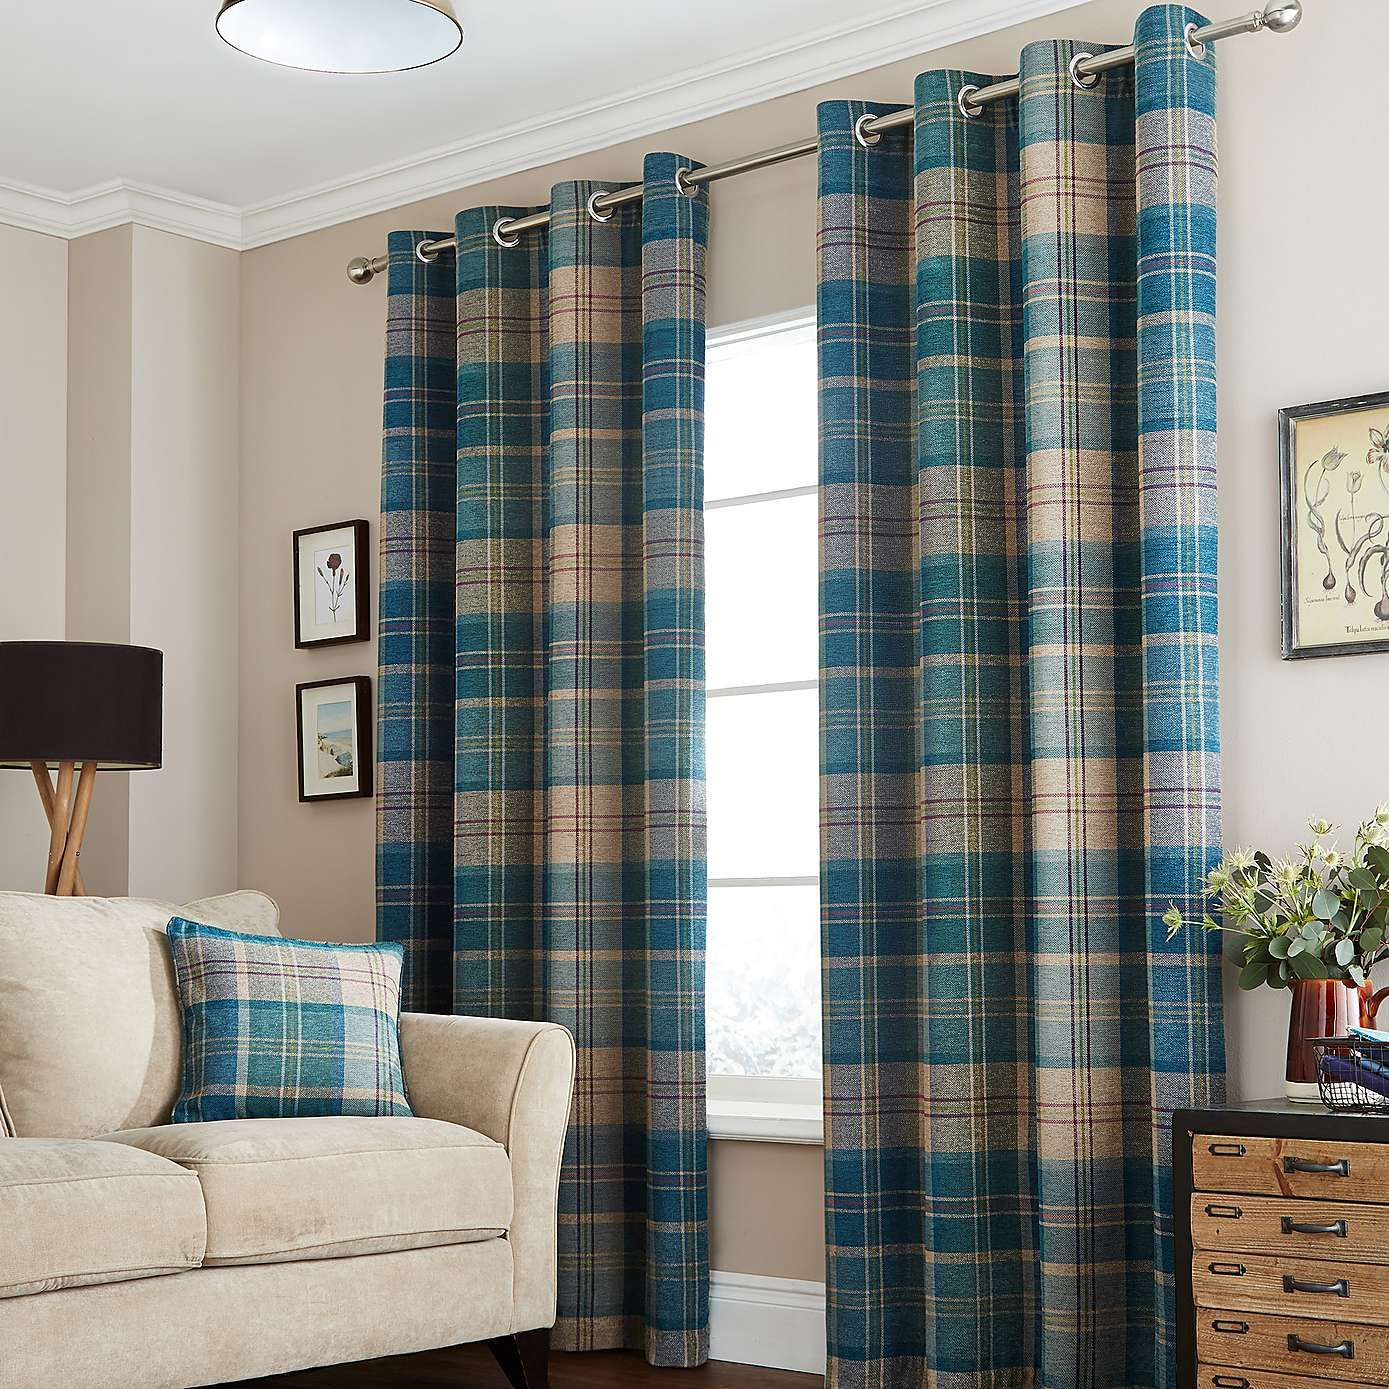 Construction Time Lined Curtains: Teal Hamish Lined Eyelet Curtains